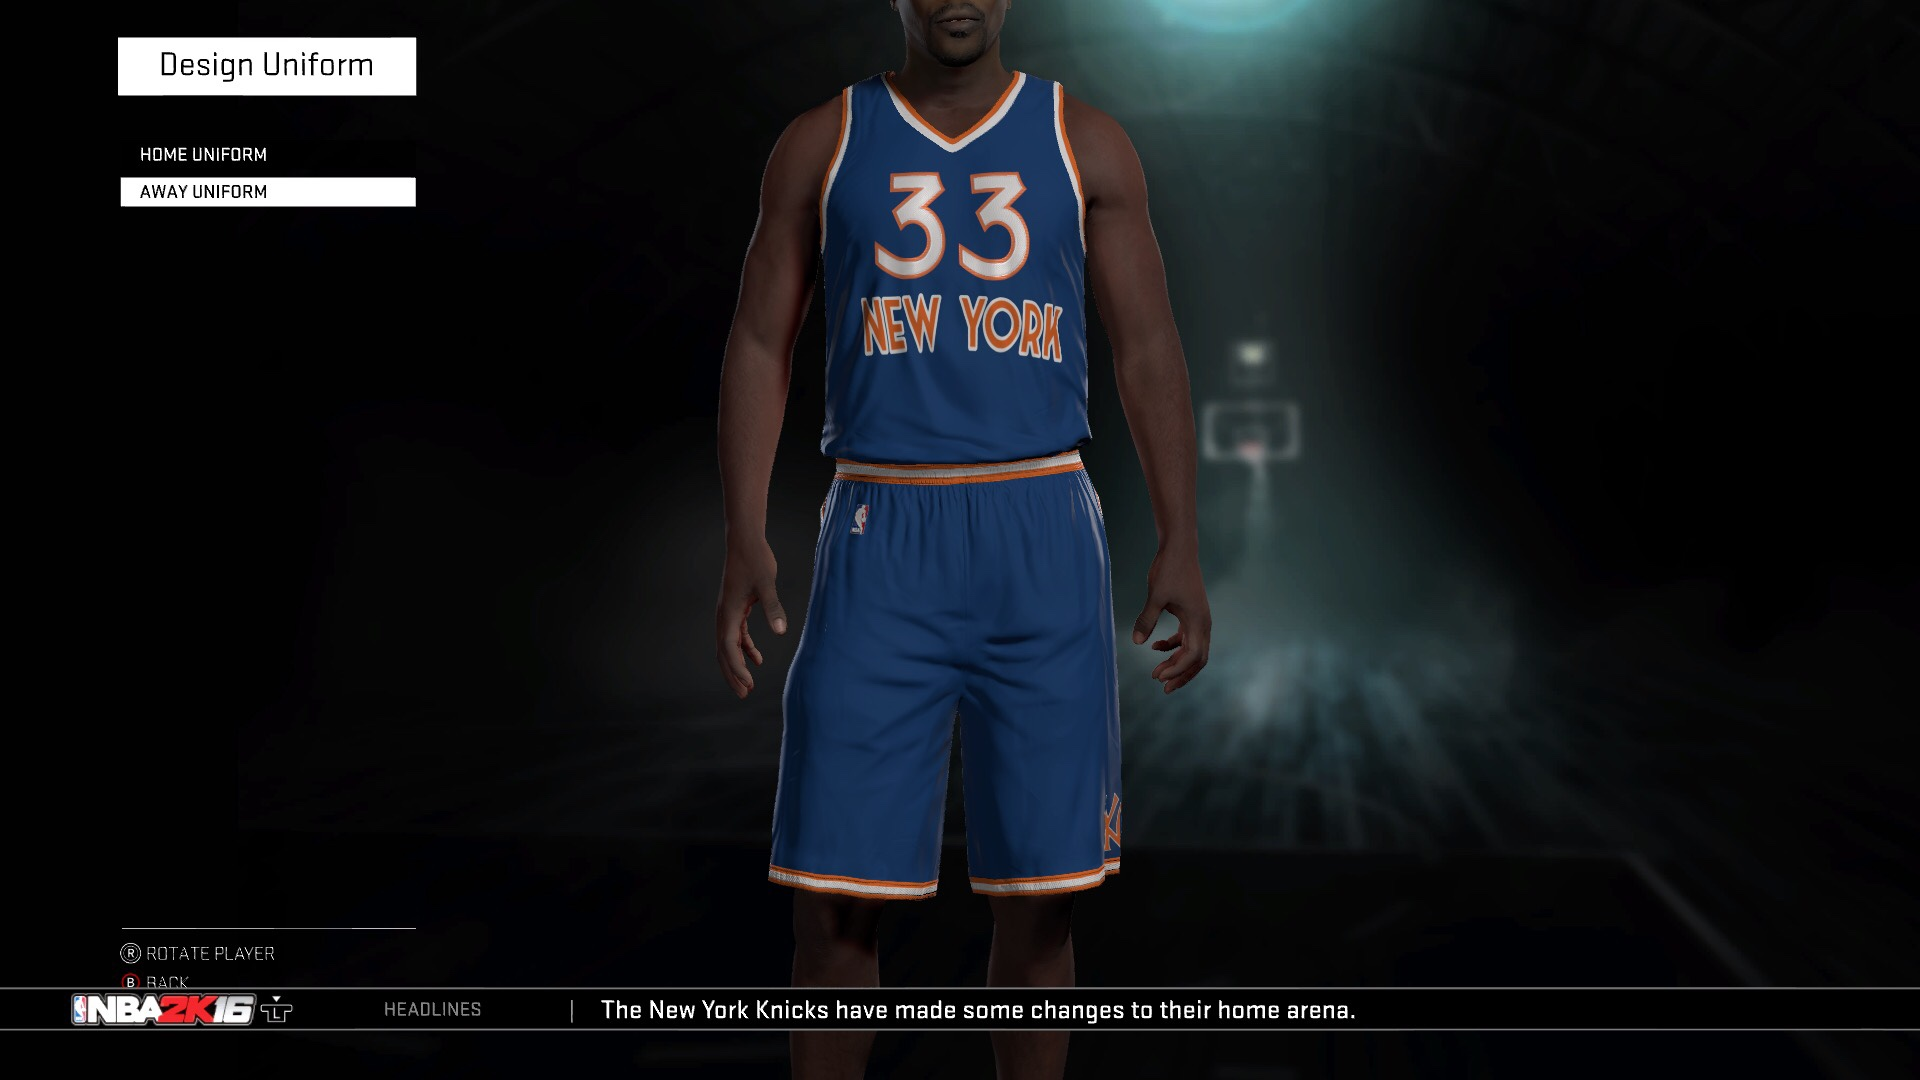 c1c2598fd NBA 2K16 Court designs and jersey creations. - Page 311 - Operation ...